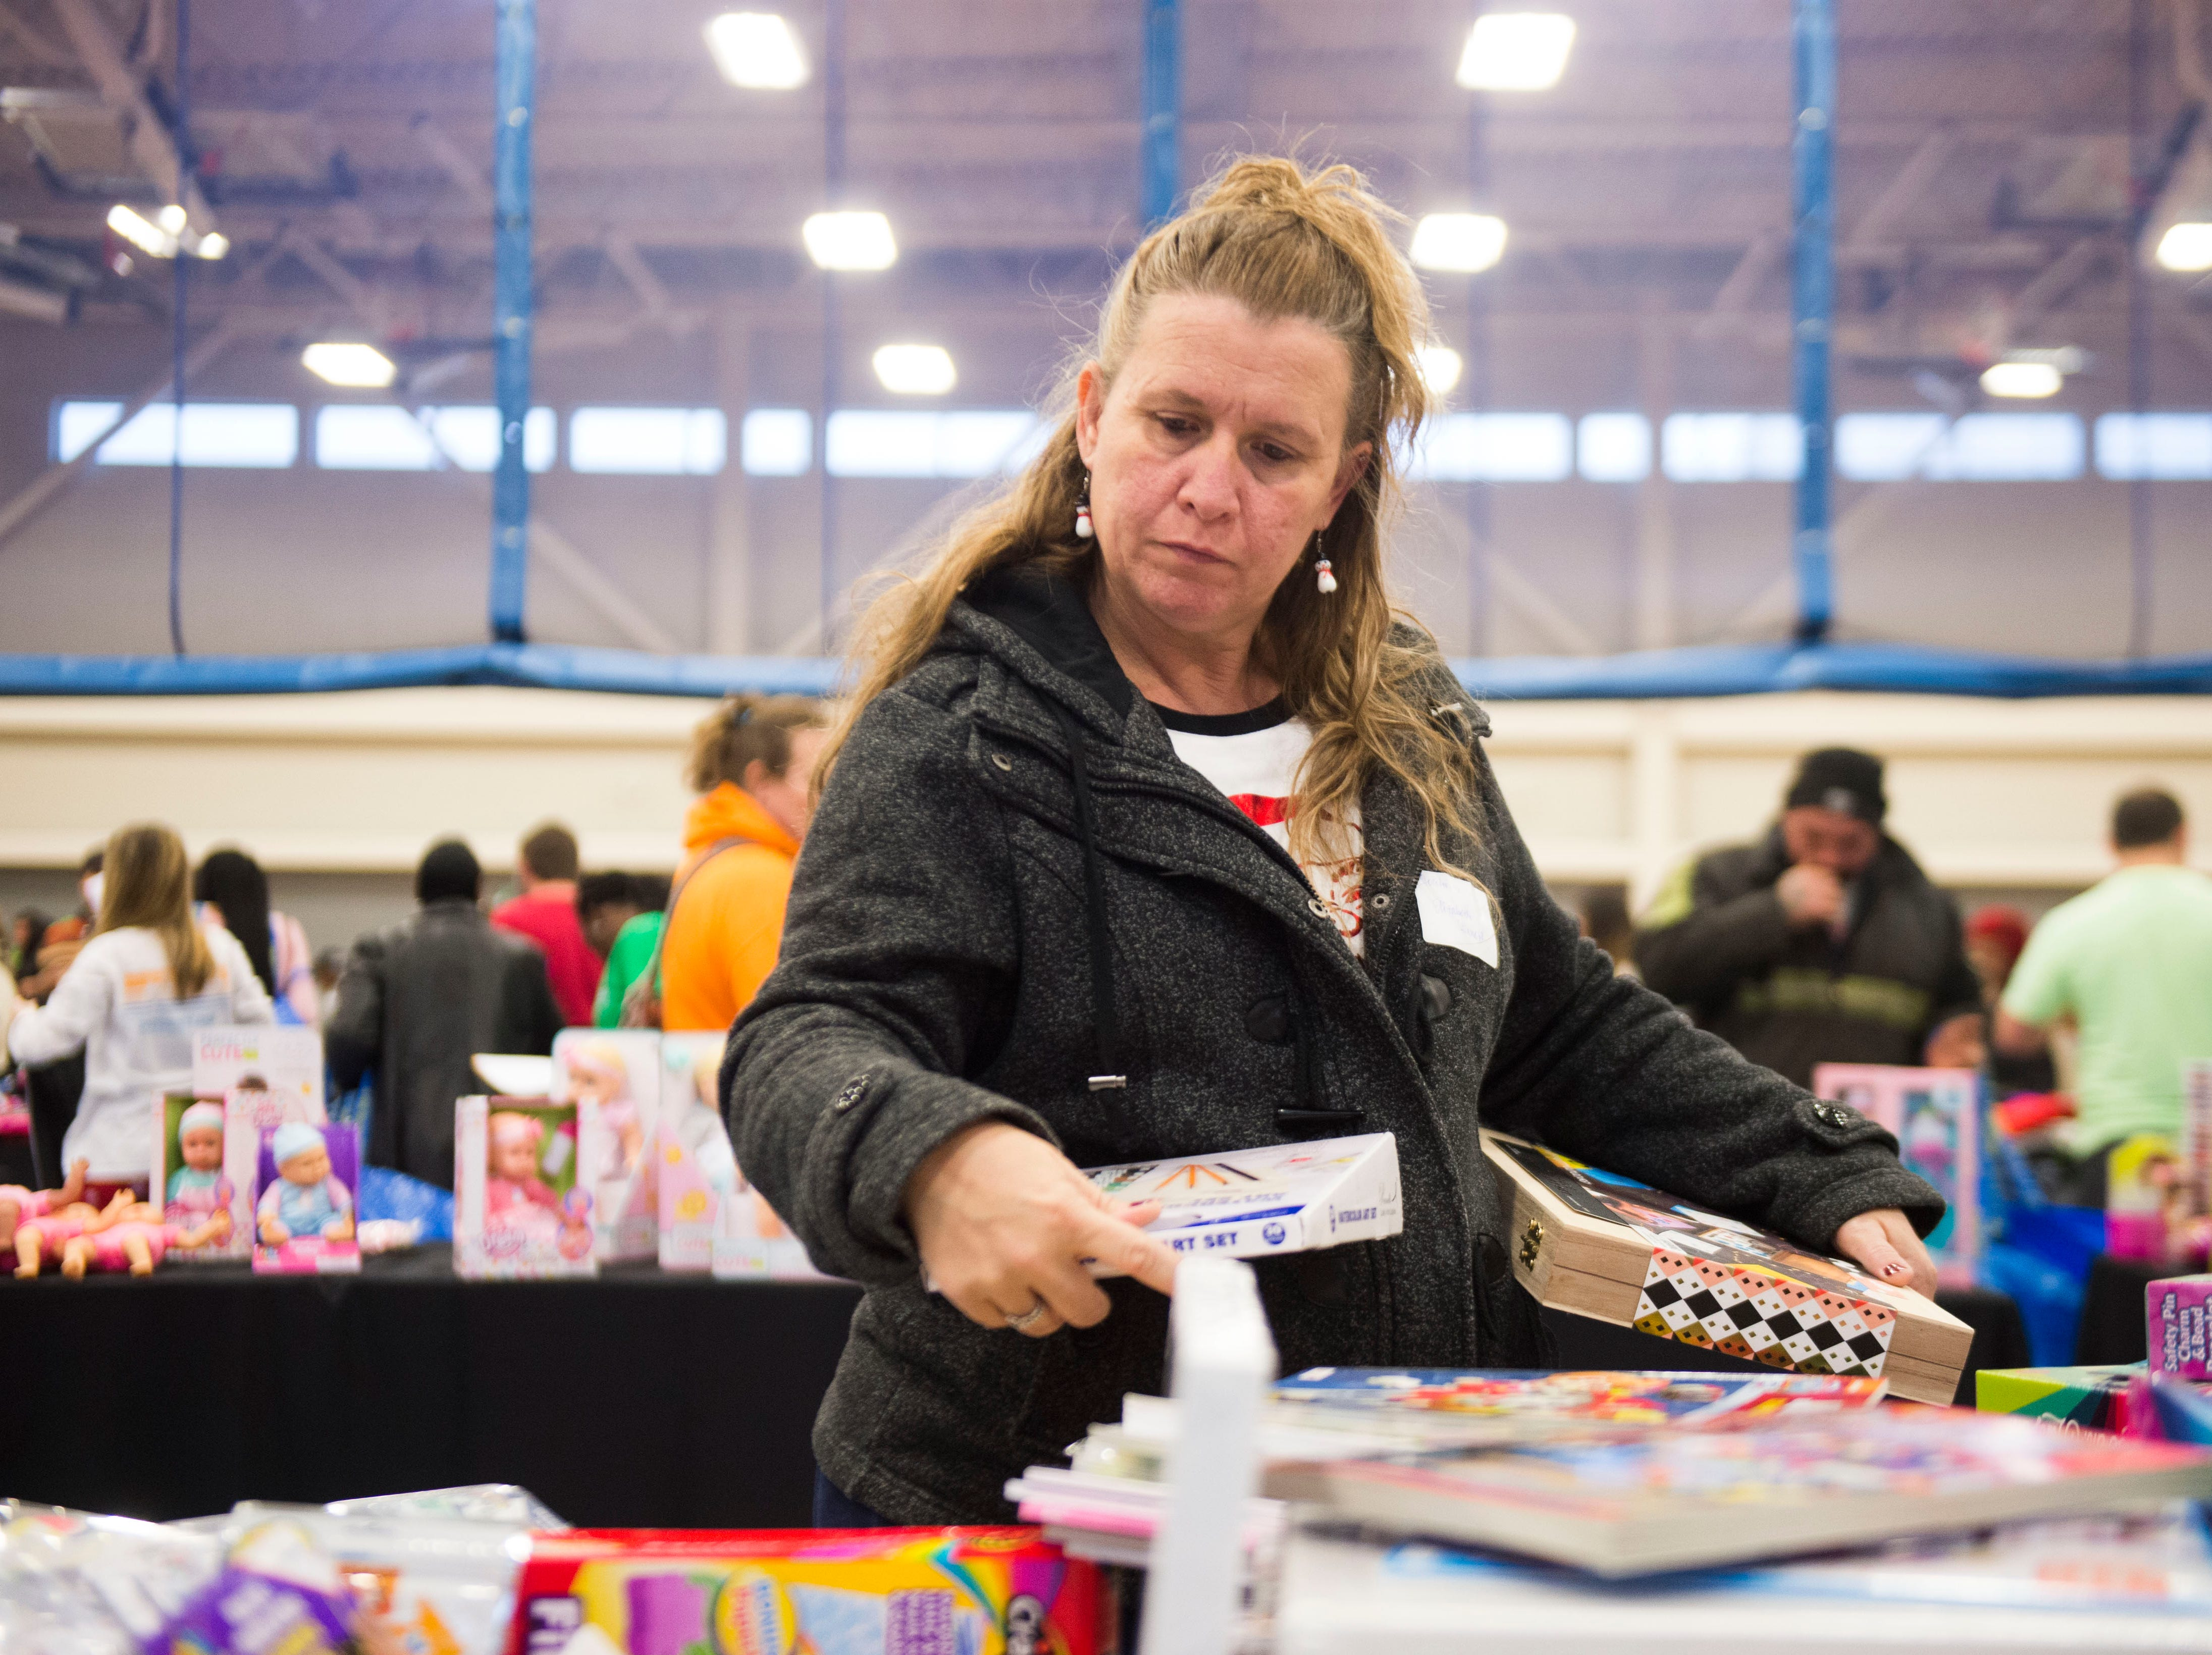 Elizabeth Stinnett checks out gifts at the Boys and Girls Clubs Regal Teen Center in Knoxville Saturday, Dec. 8, 2018. Parents, grandparents or guardians of over 1,500 underserved children were able to pick out a limited number of free gifts for their child.